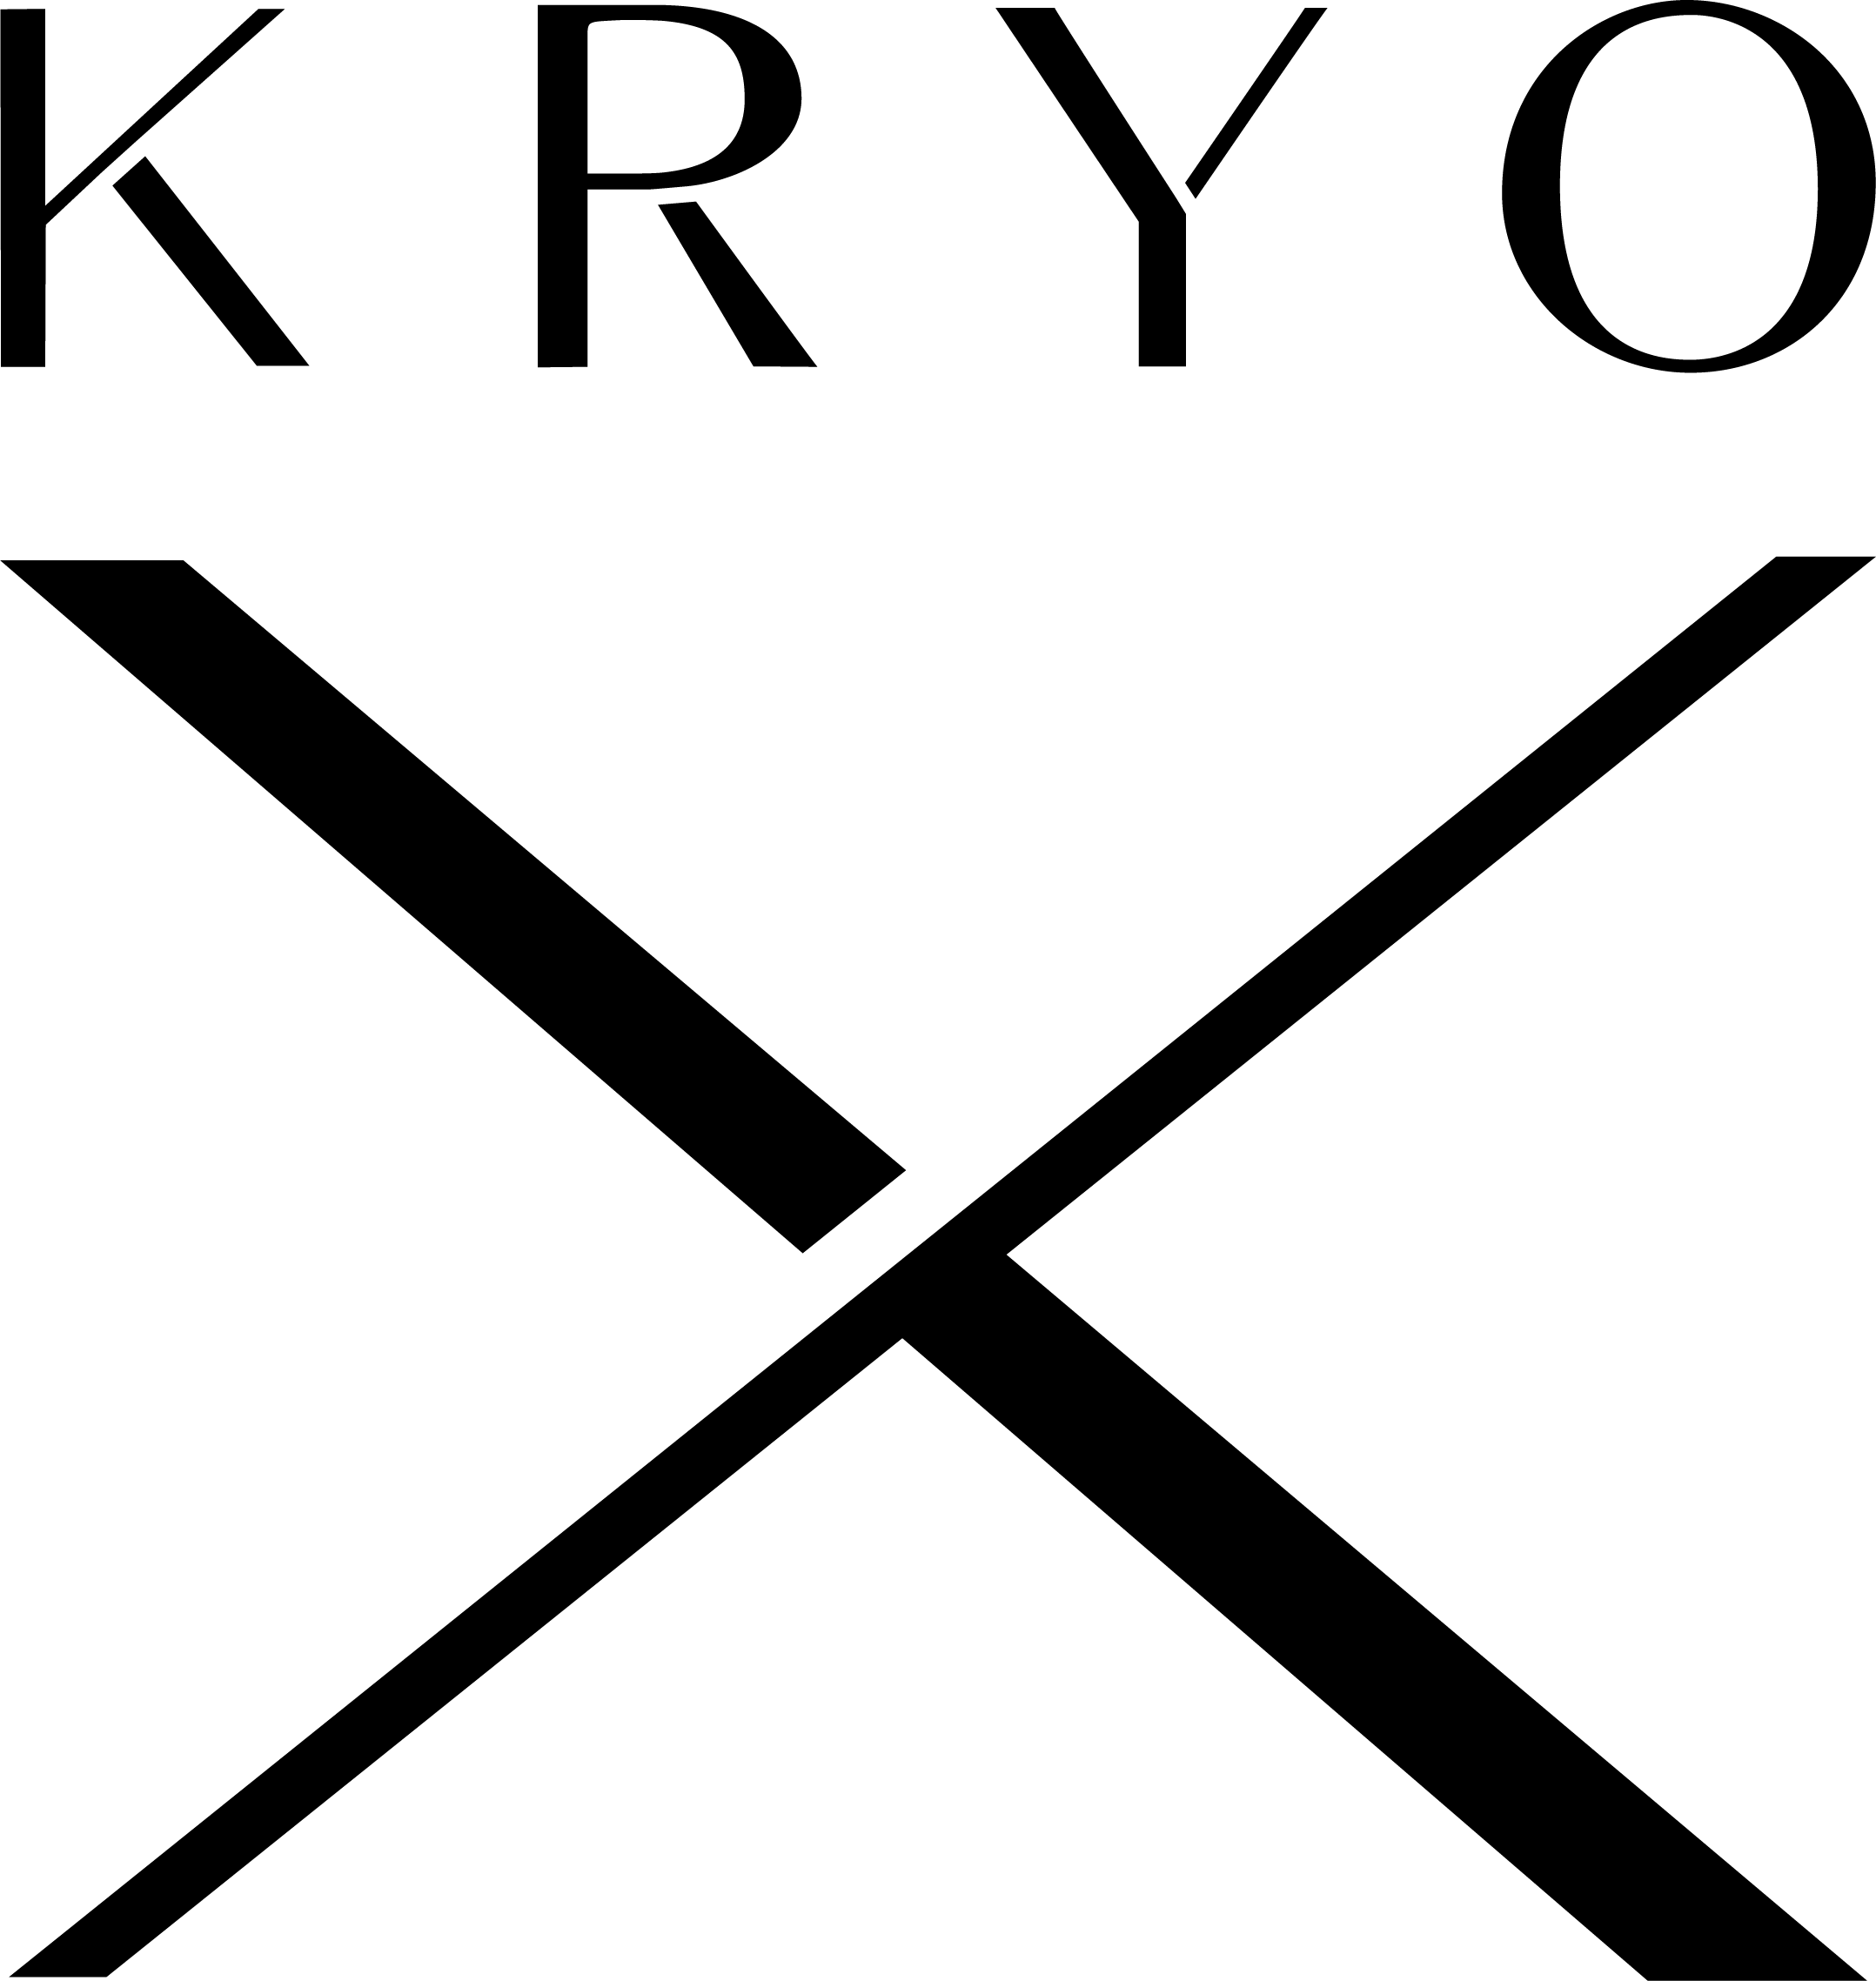 Copy of KryoLife